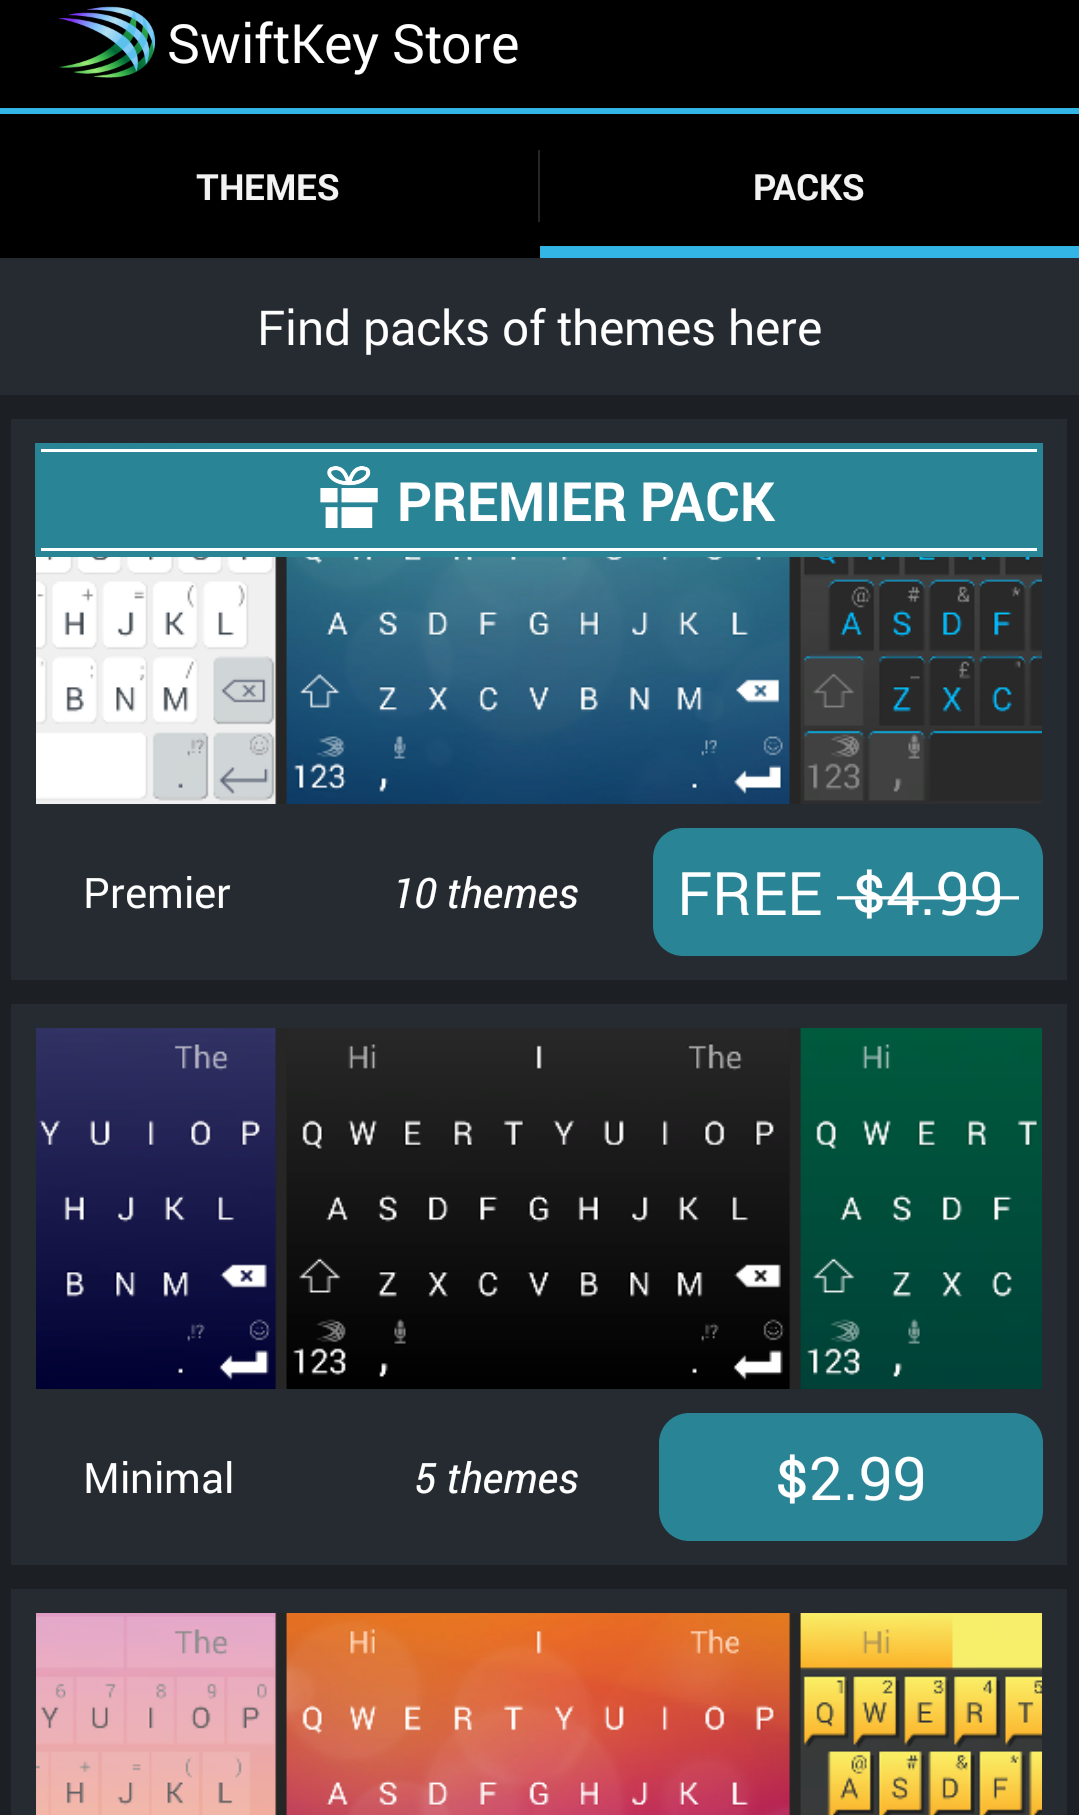 Swiftkey Android AndroDollar 1 - Swiftkey for Android goes Free with Premium Themes, Emoji and a lot more; iOS 8 version Coming Soon